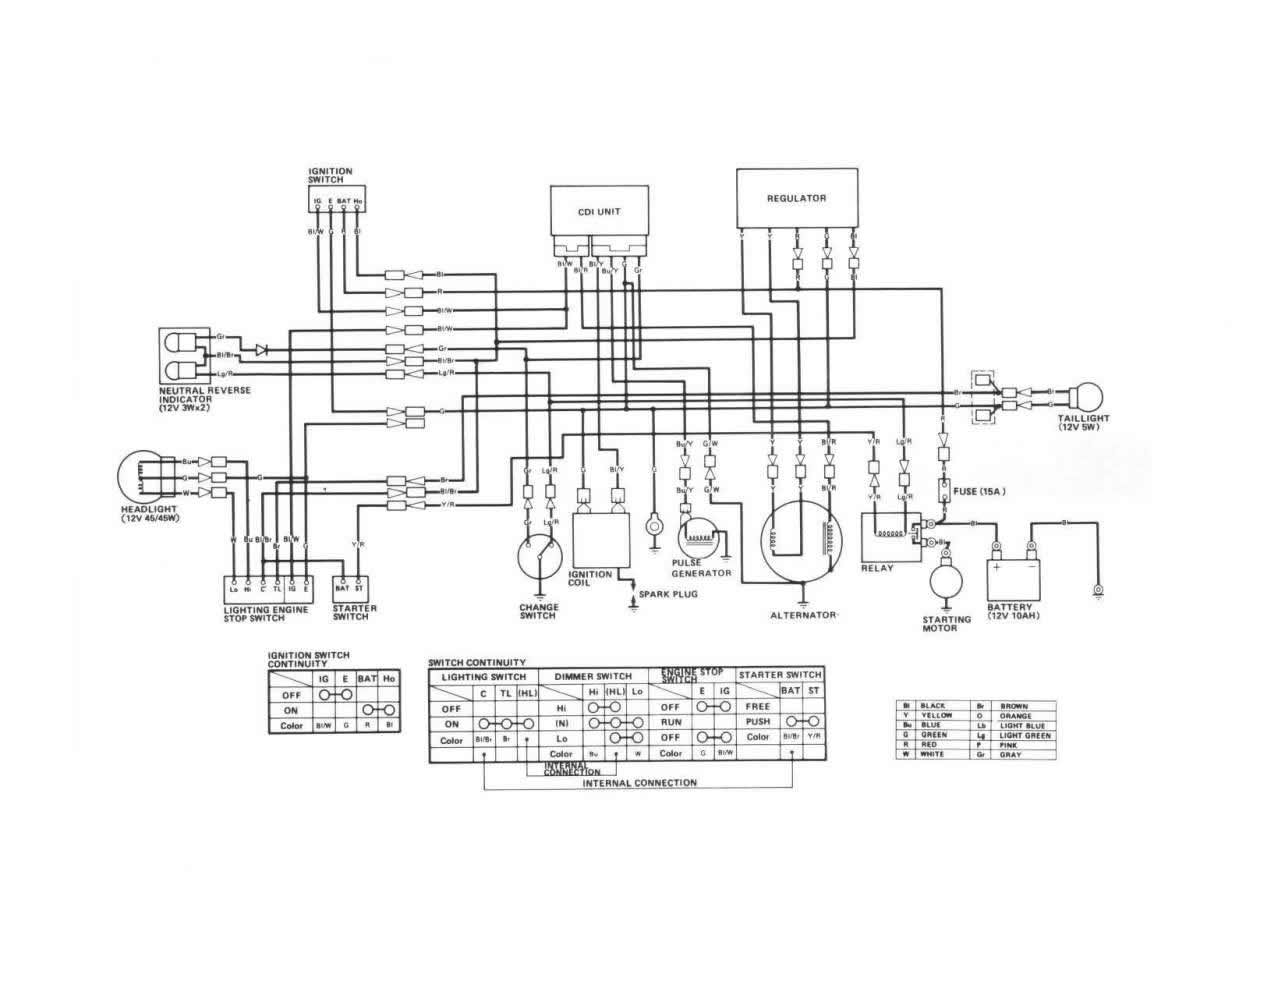 Honda 250r Wiring Diagram Xf Alternator Wiring Diagram For Wiring Diagram Schematics